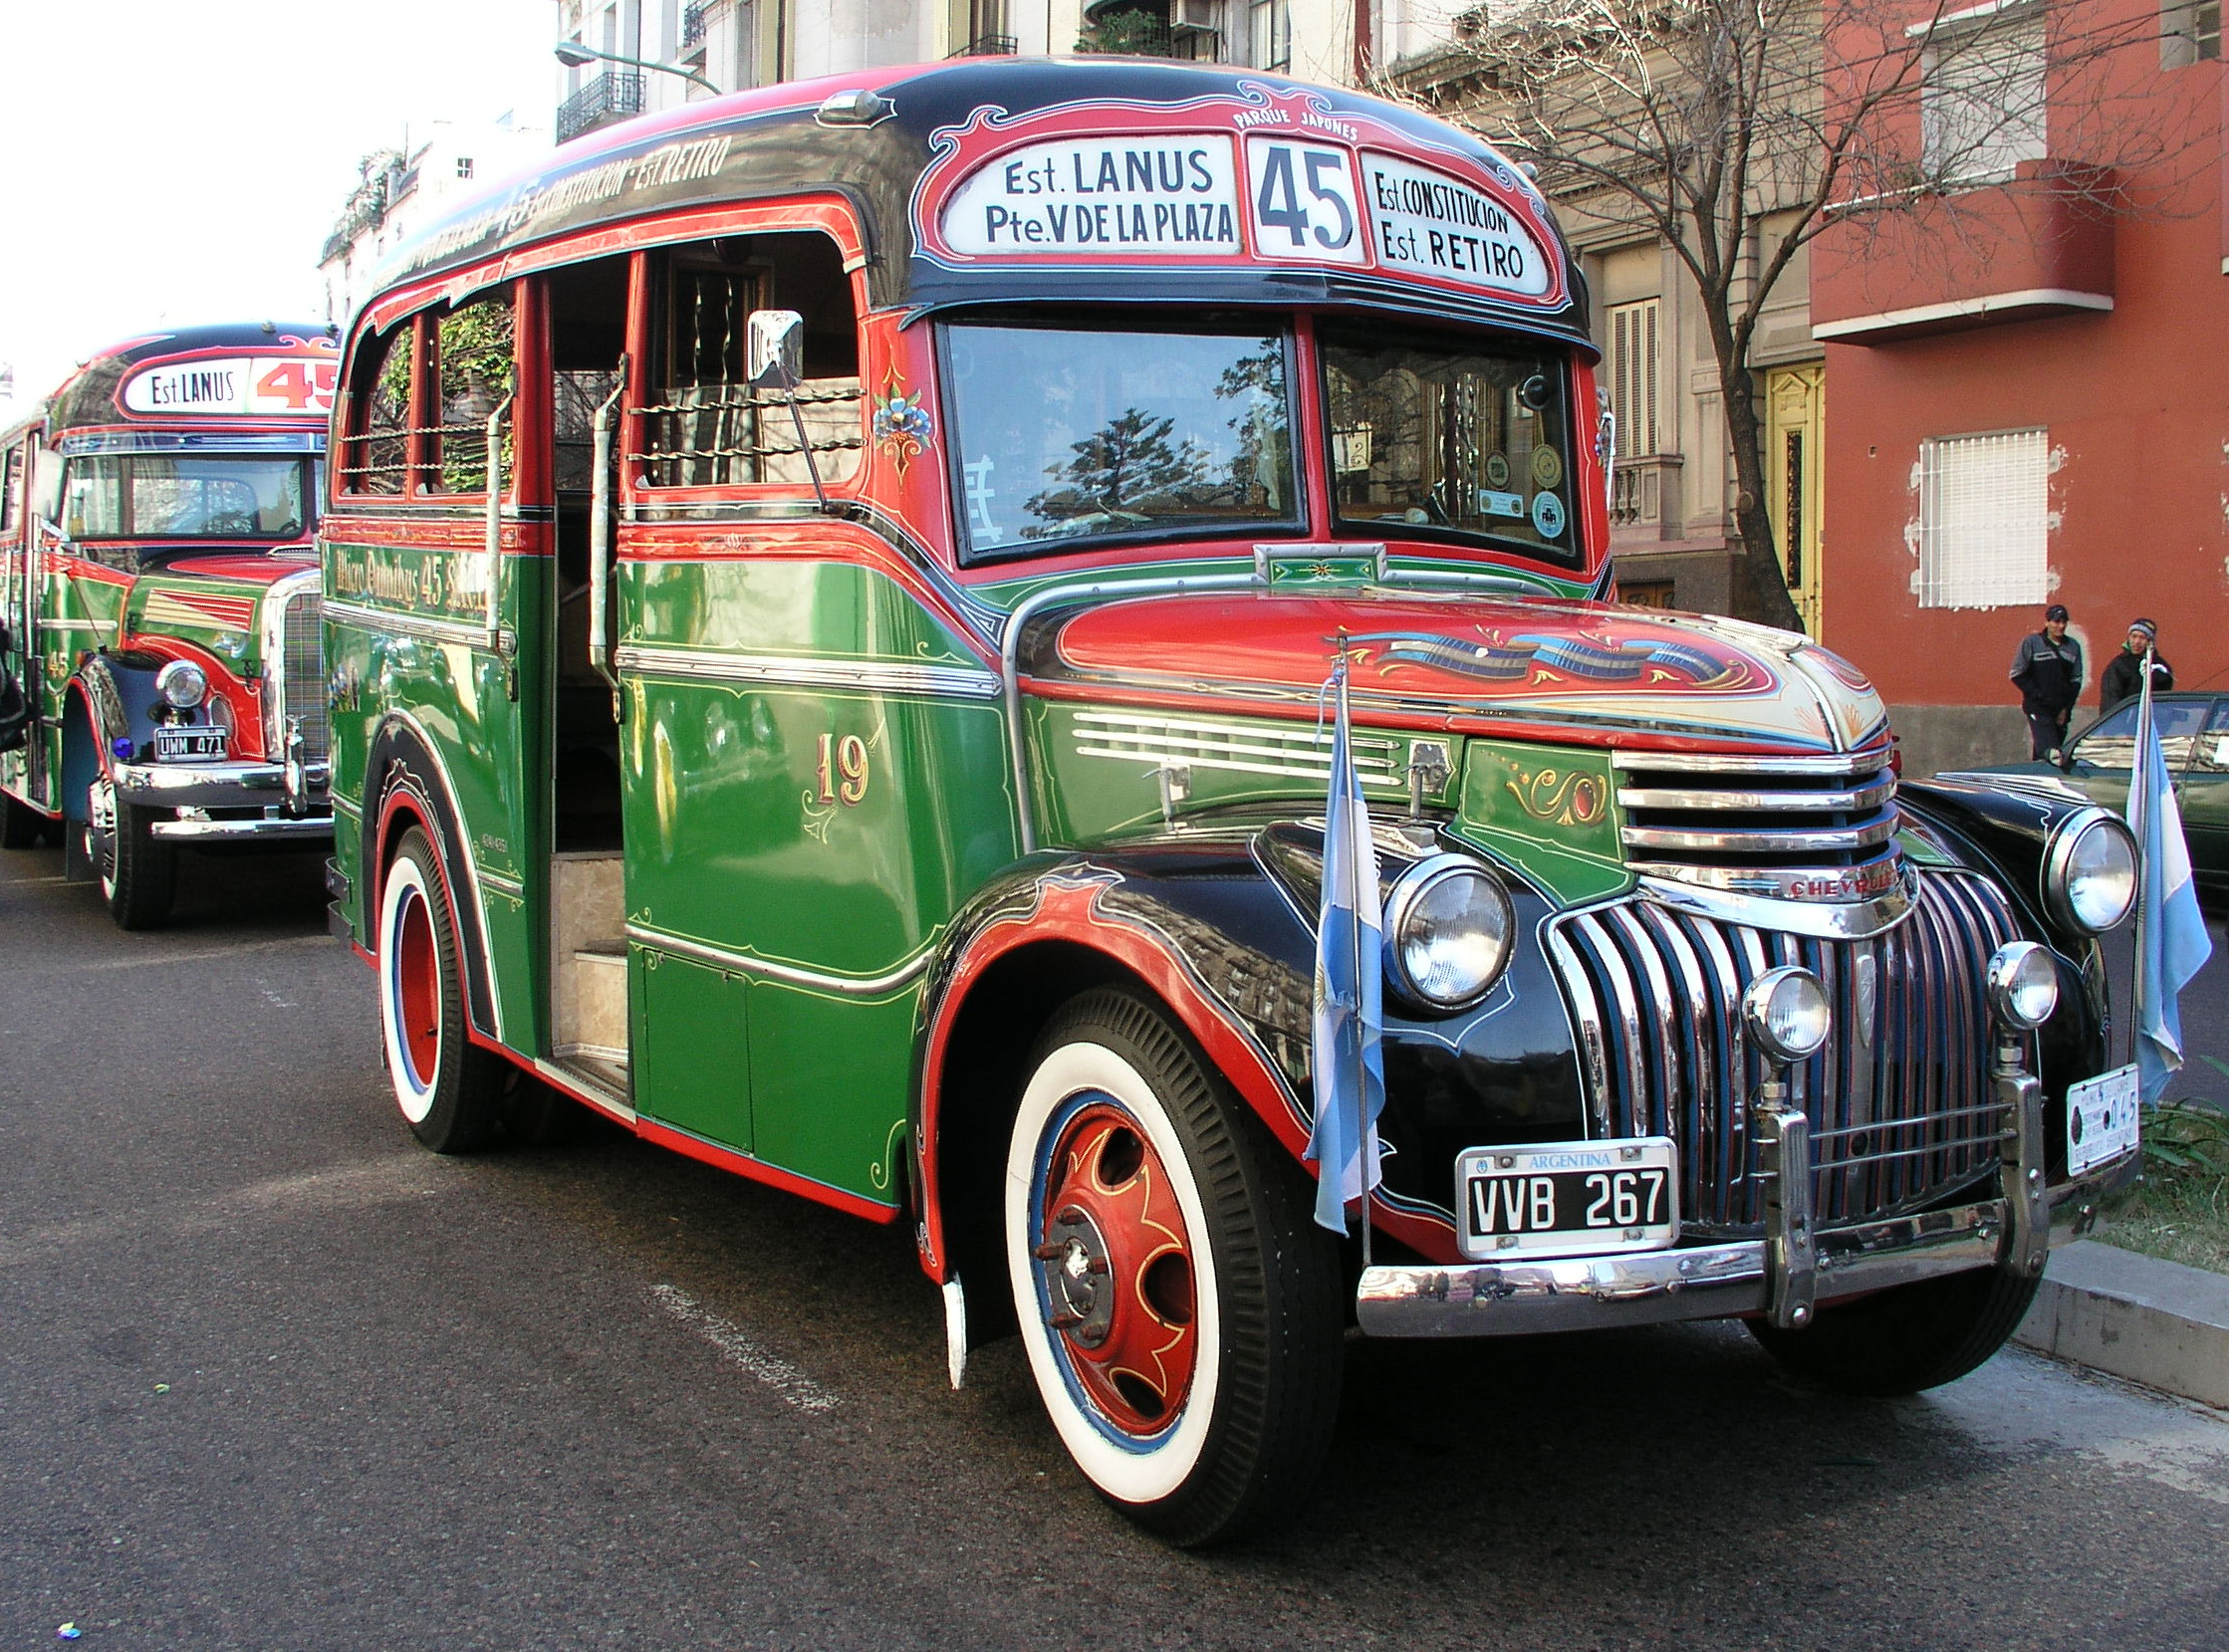 La Food Trucks >> 1000+ images about colectivos on Pinterest   Amigos, Bus Tickets and Argentina